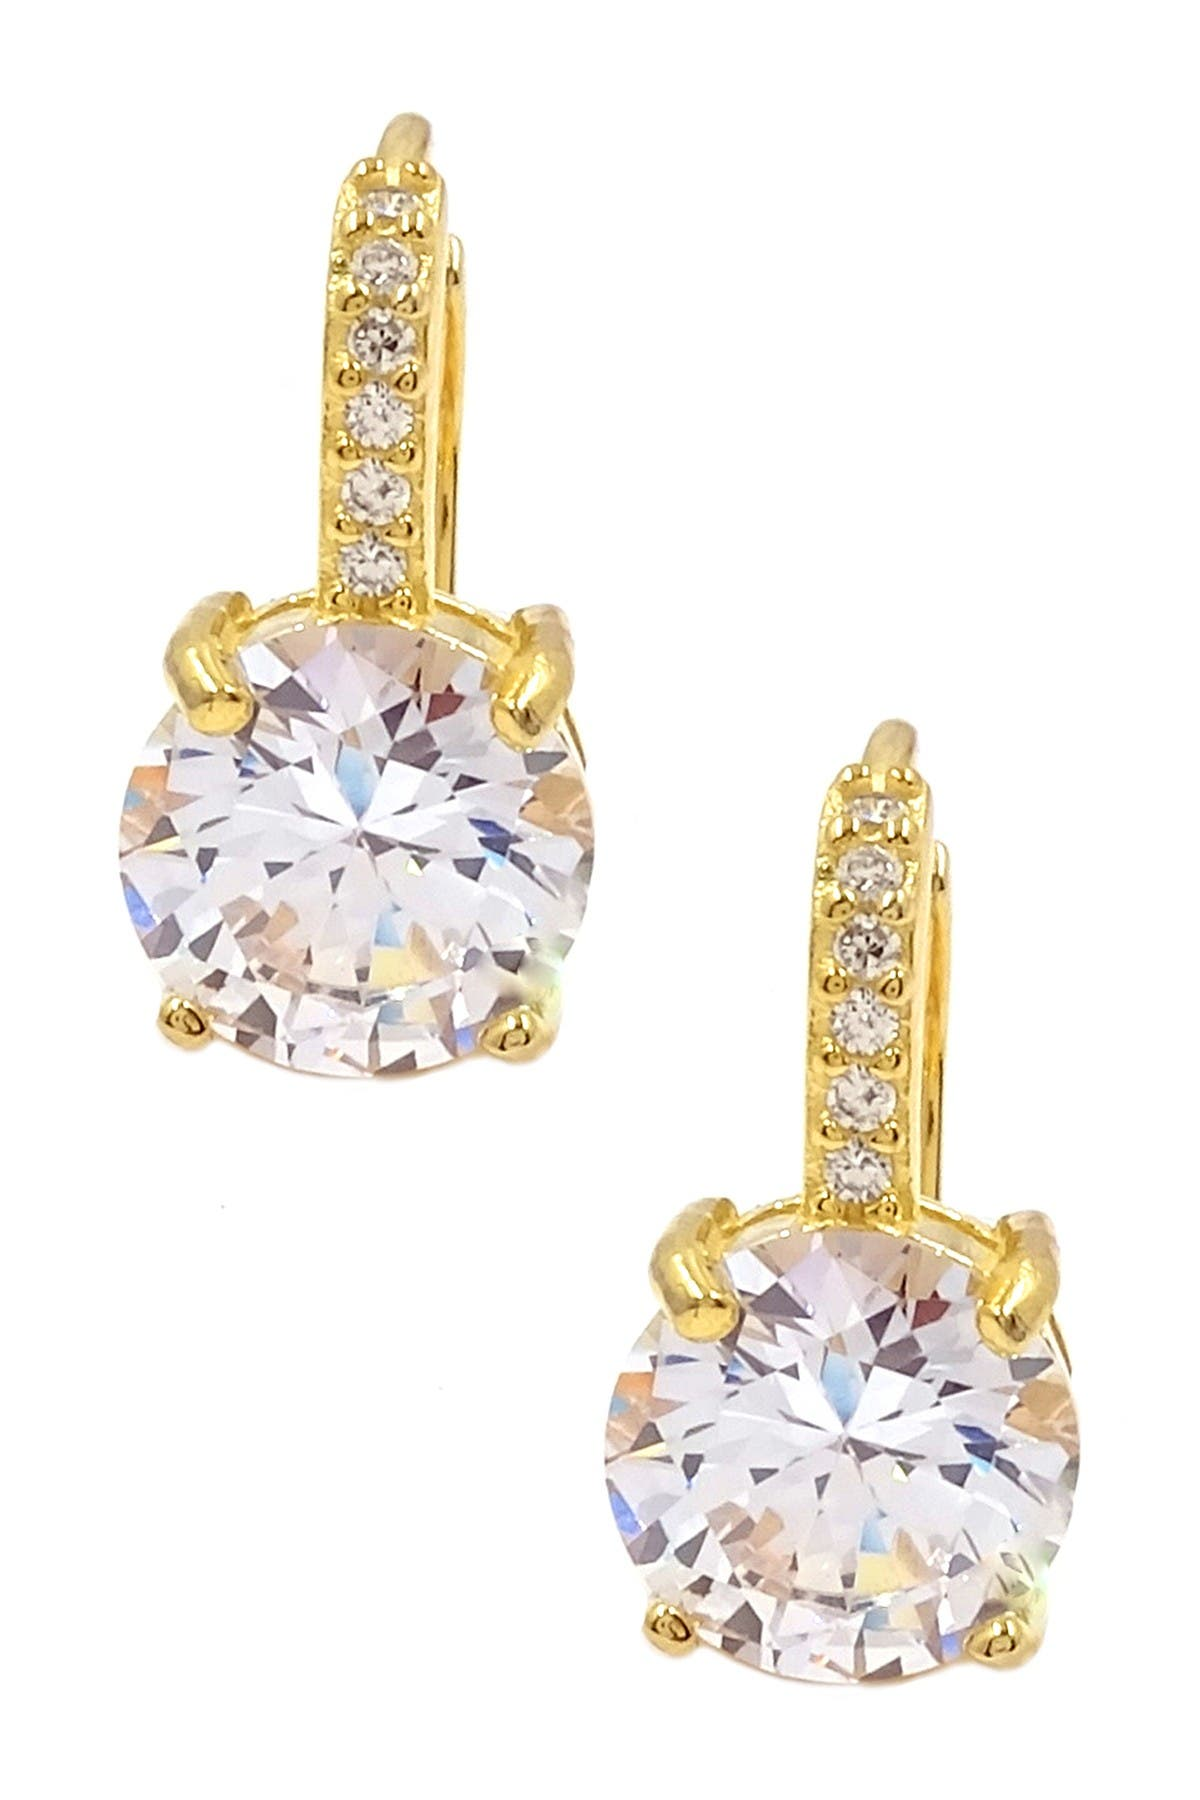 Image of Savvy Cie 18K Yellow Gold Vermeil Round-Cut Z Drop Earrings